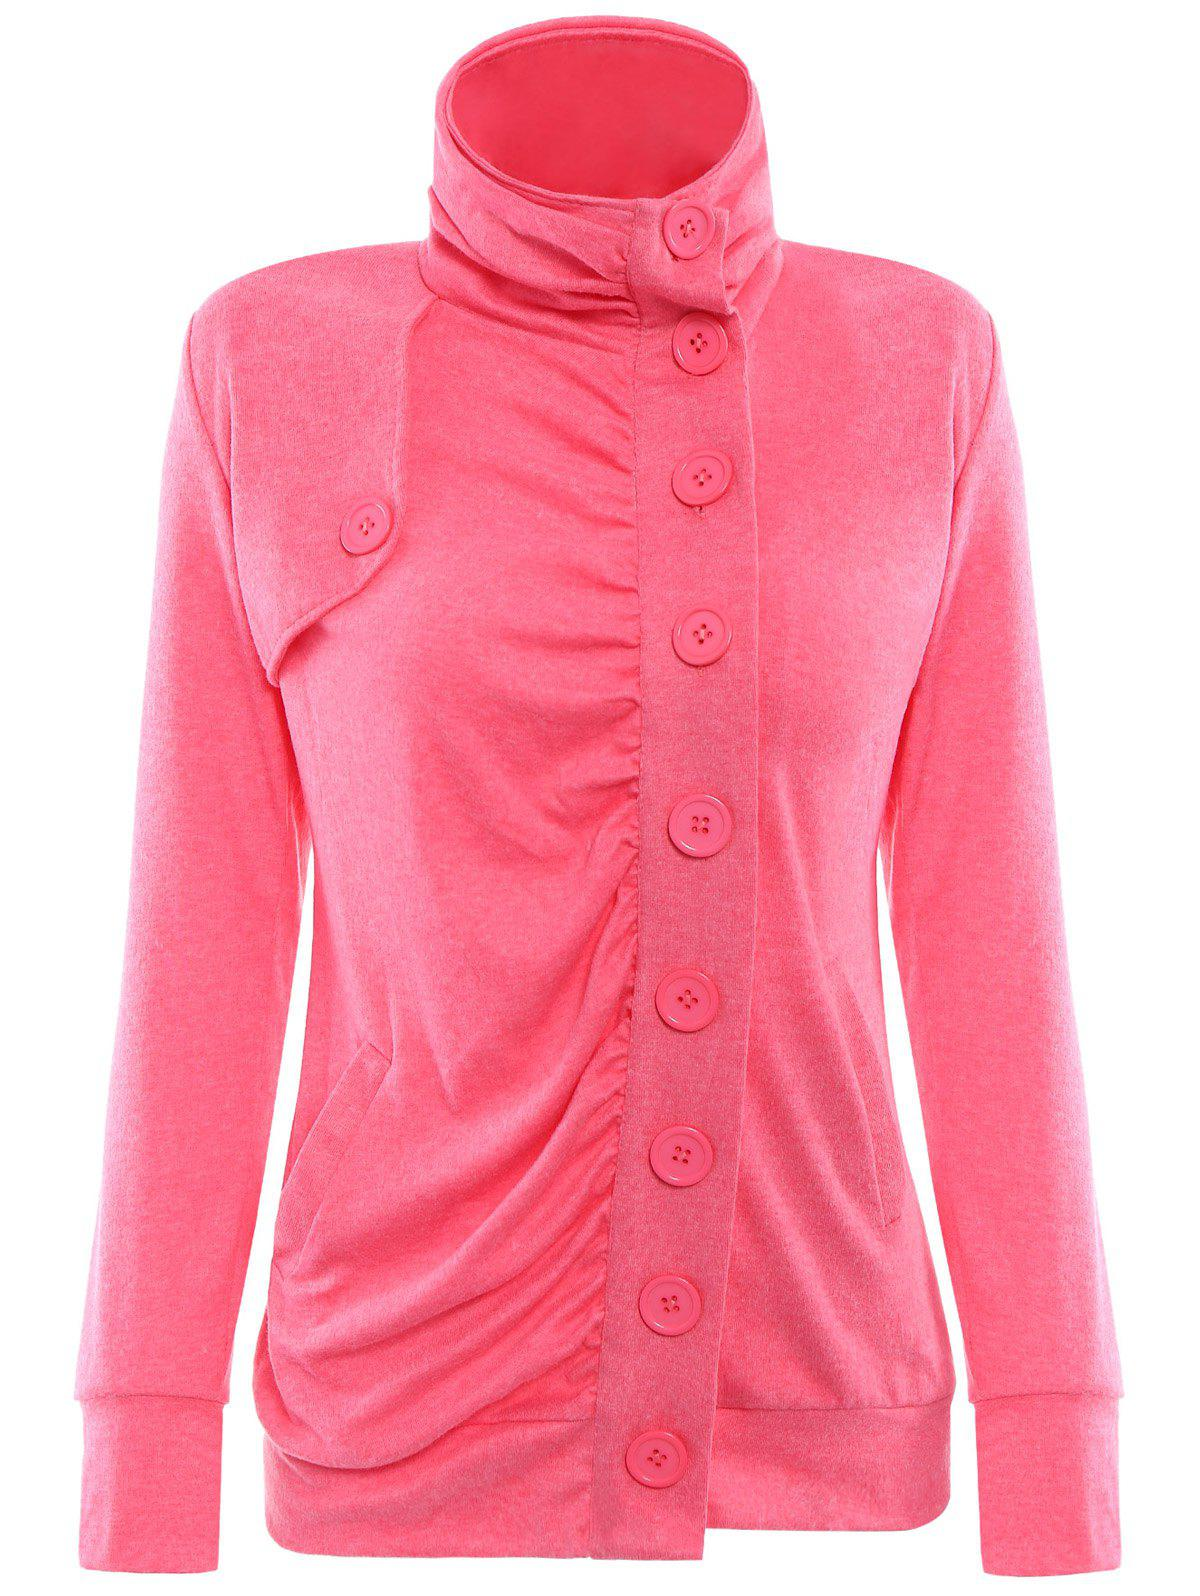 Chic Stand-Up Collar Long Sleeve Single Breasted Jacket For Women - RED M